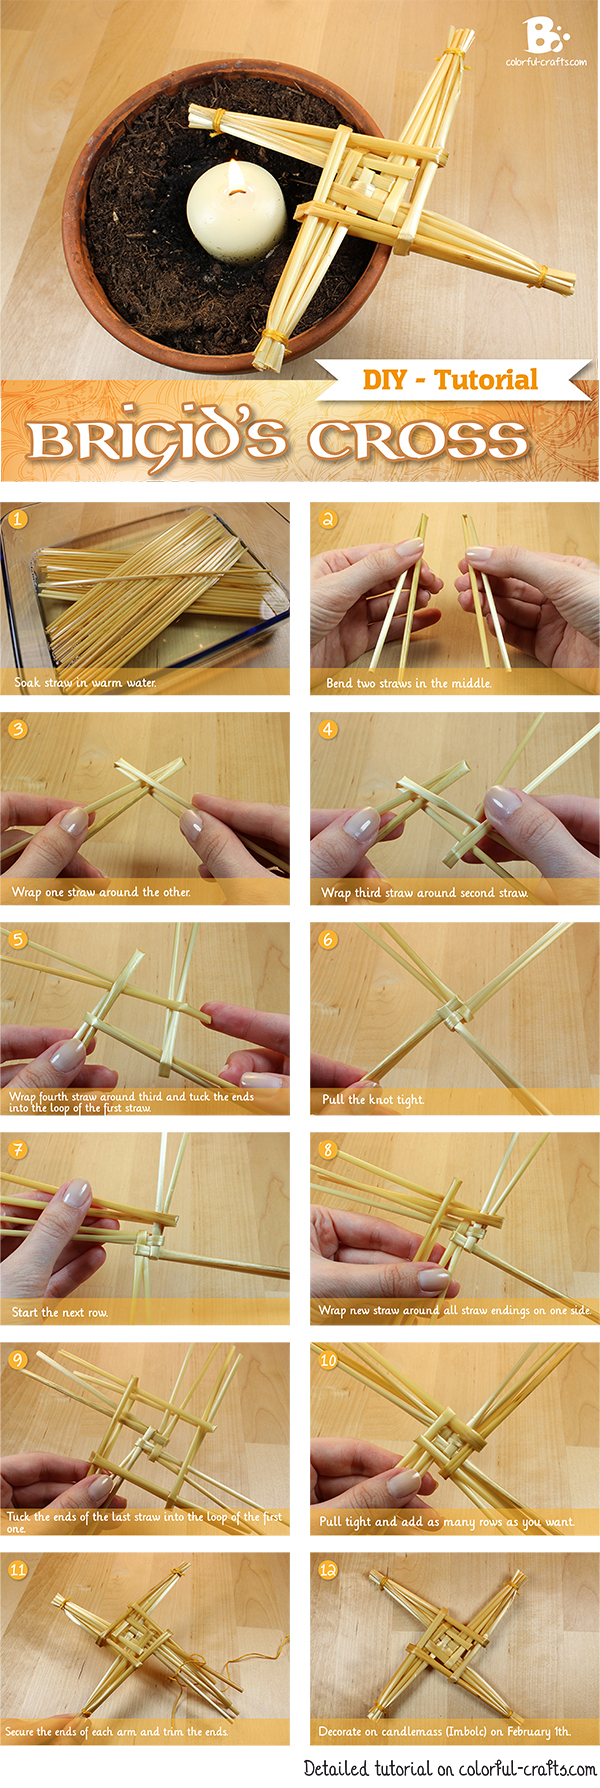 DIY Brigids Cross Tutorial